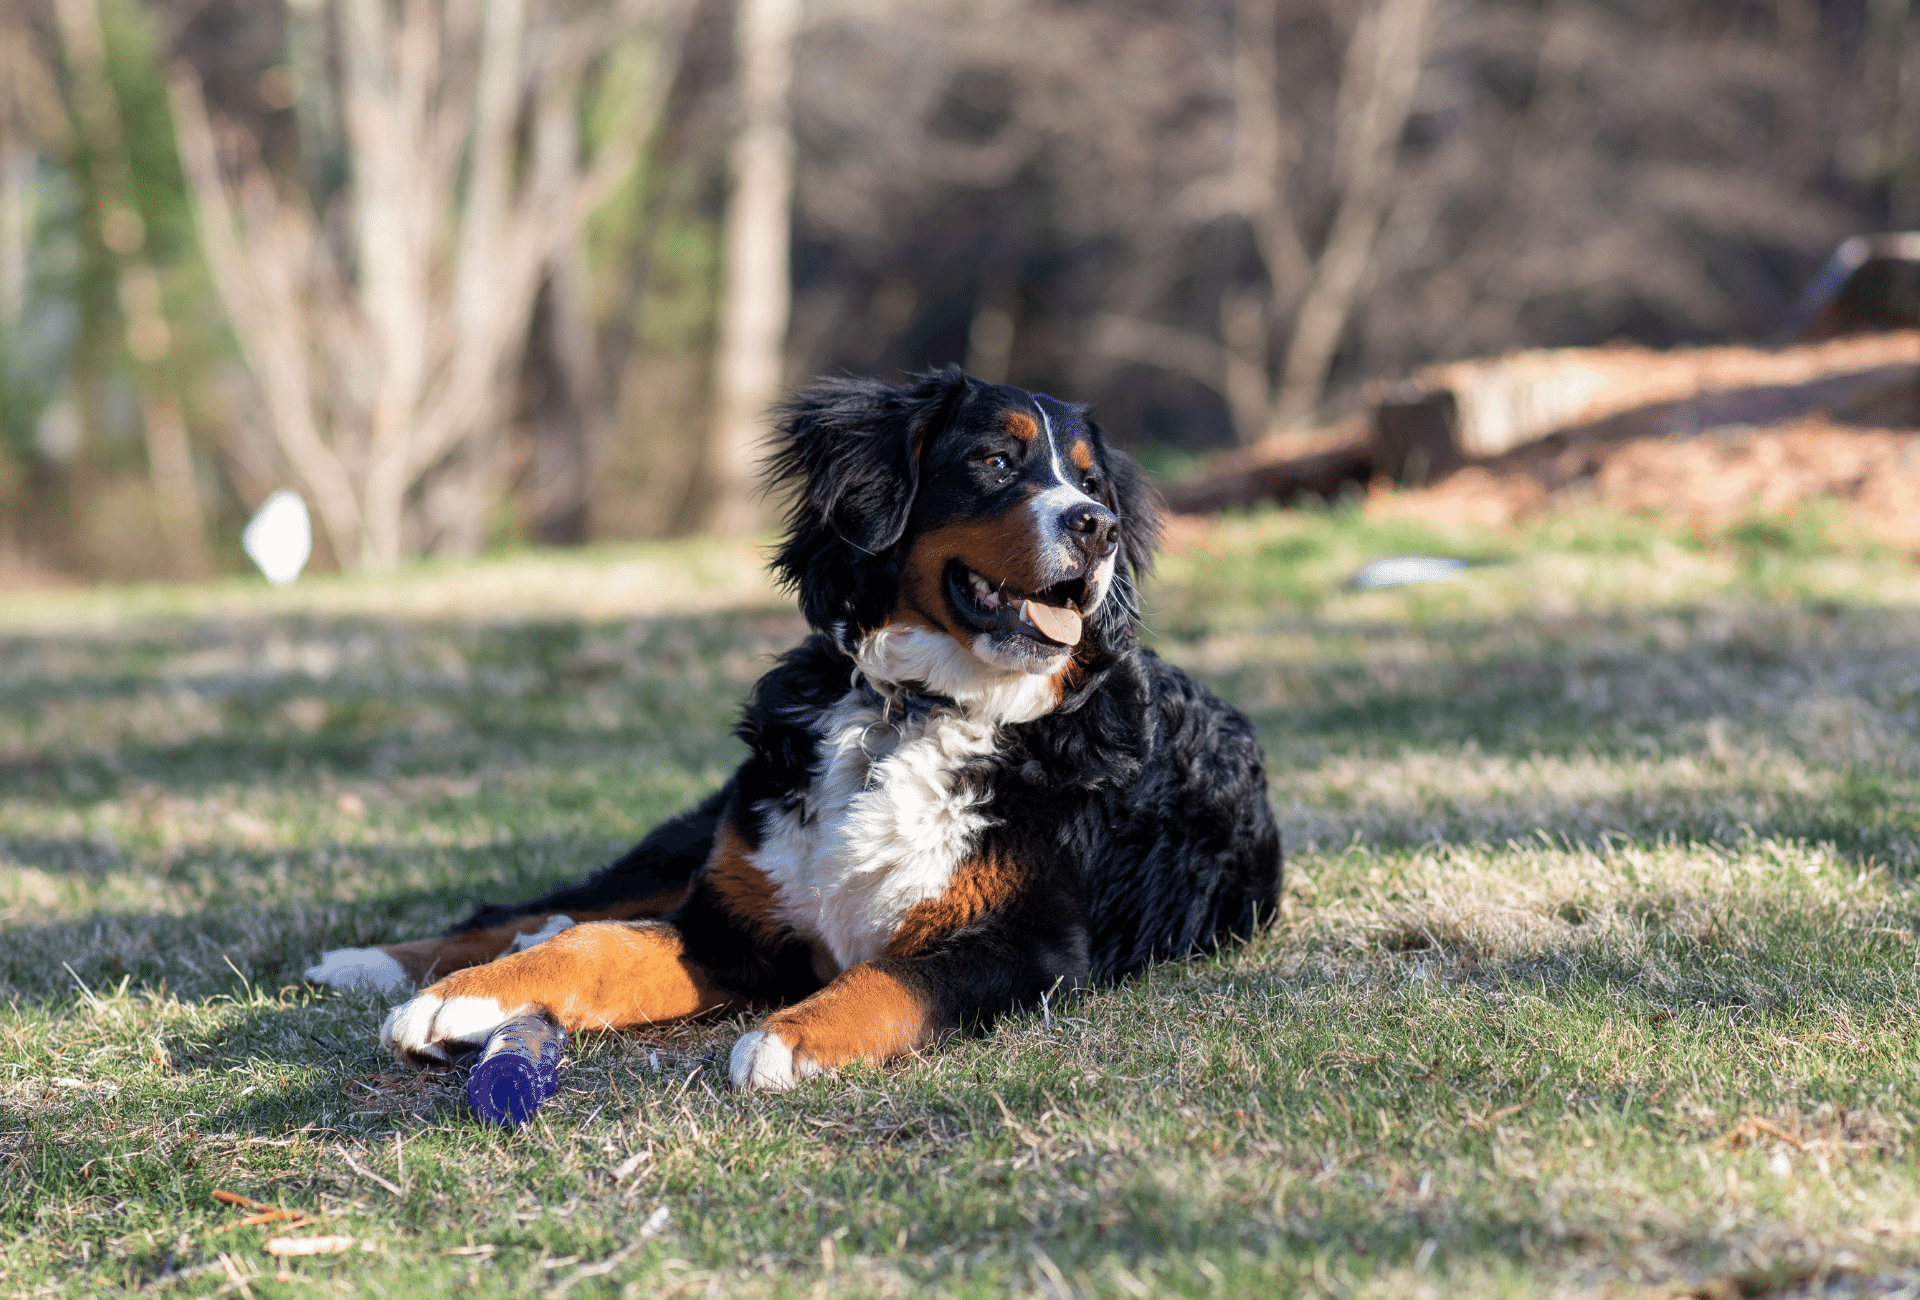 Bernese Mountain Dog Poodle cross with toy between his paws.